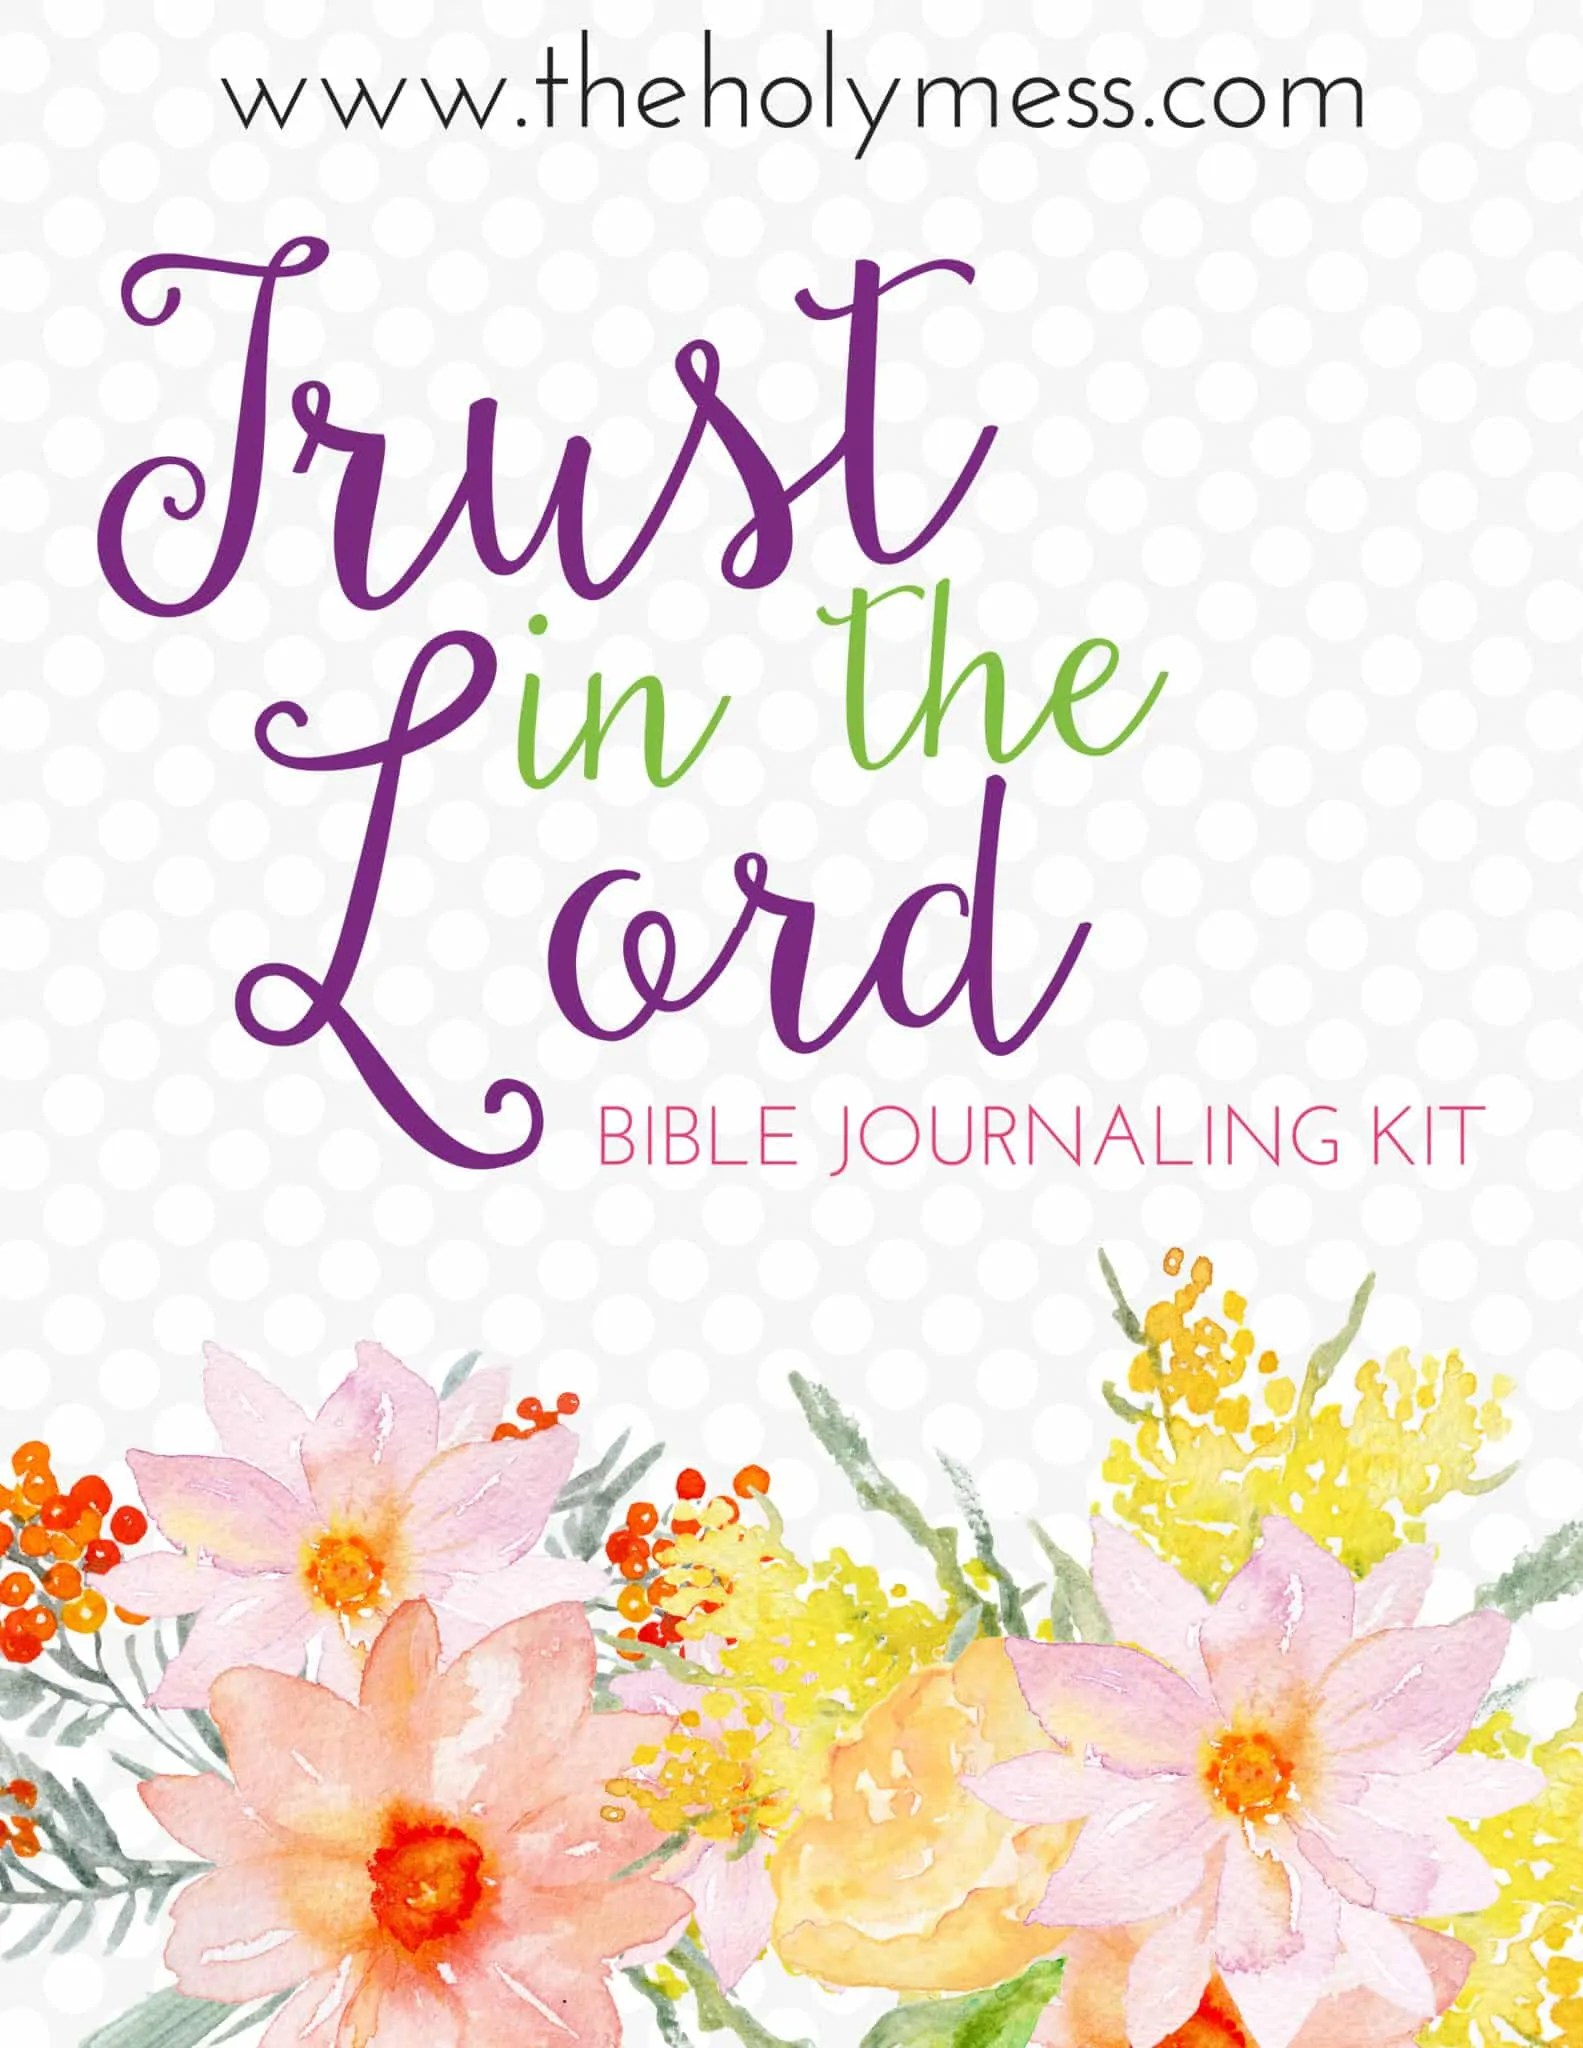 Why We Can Trust In The Lord 5 Ways To Do It Umtm